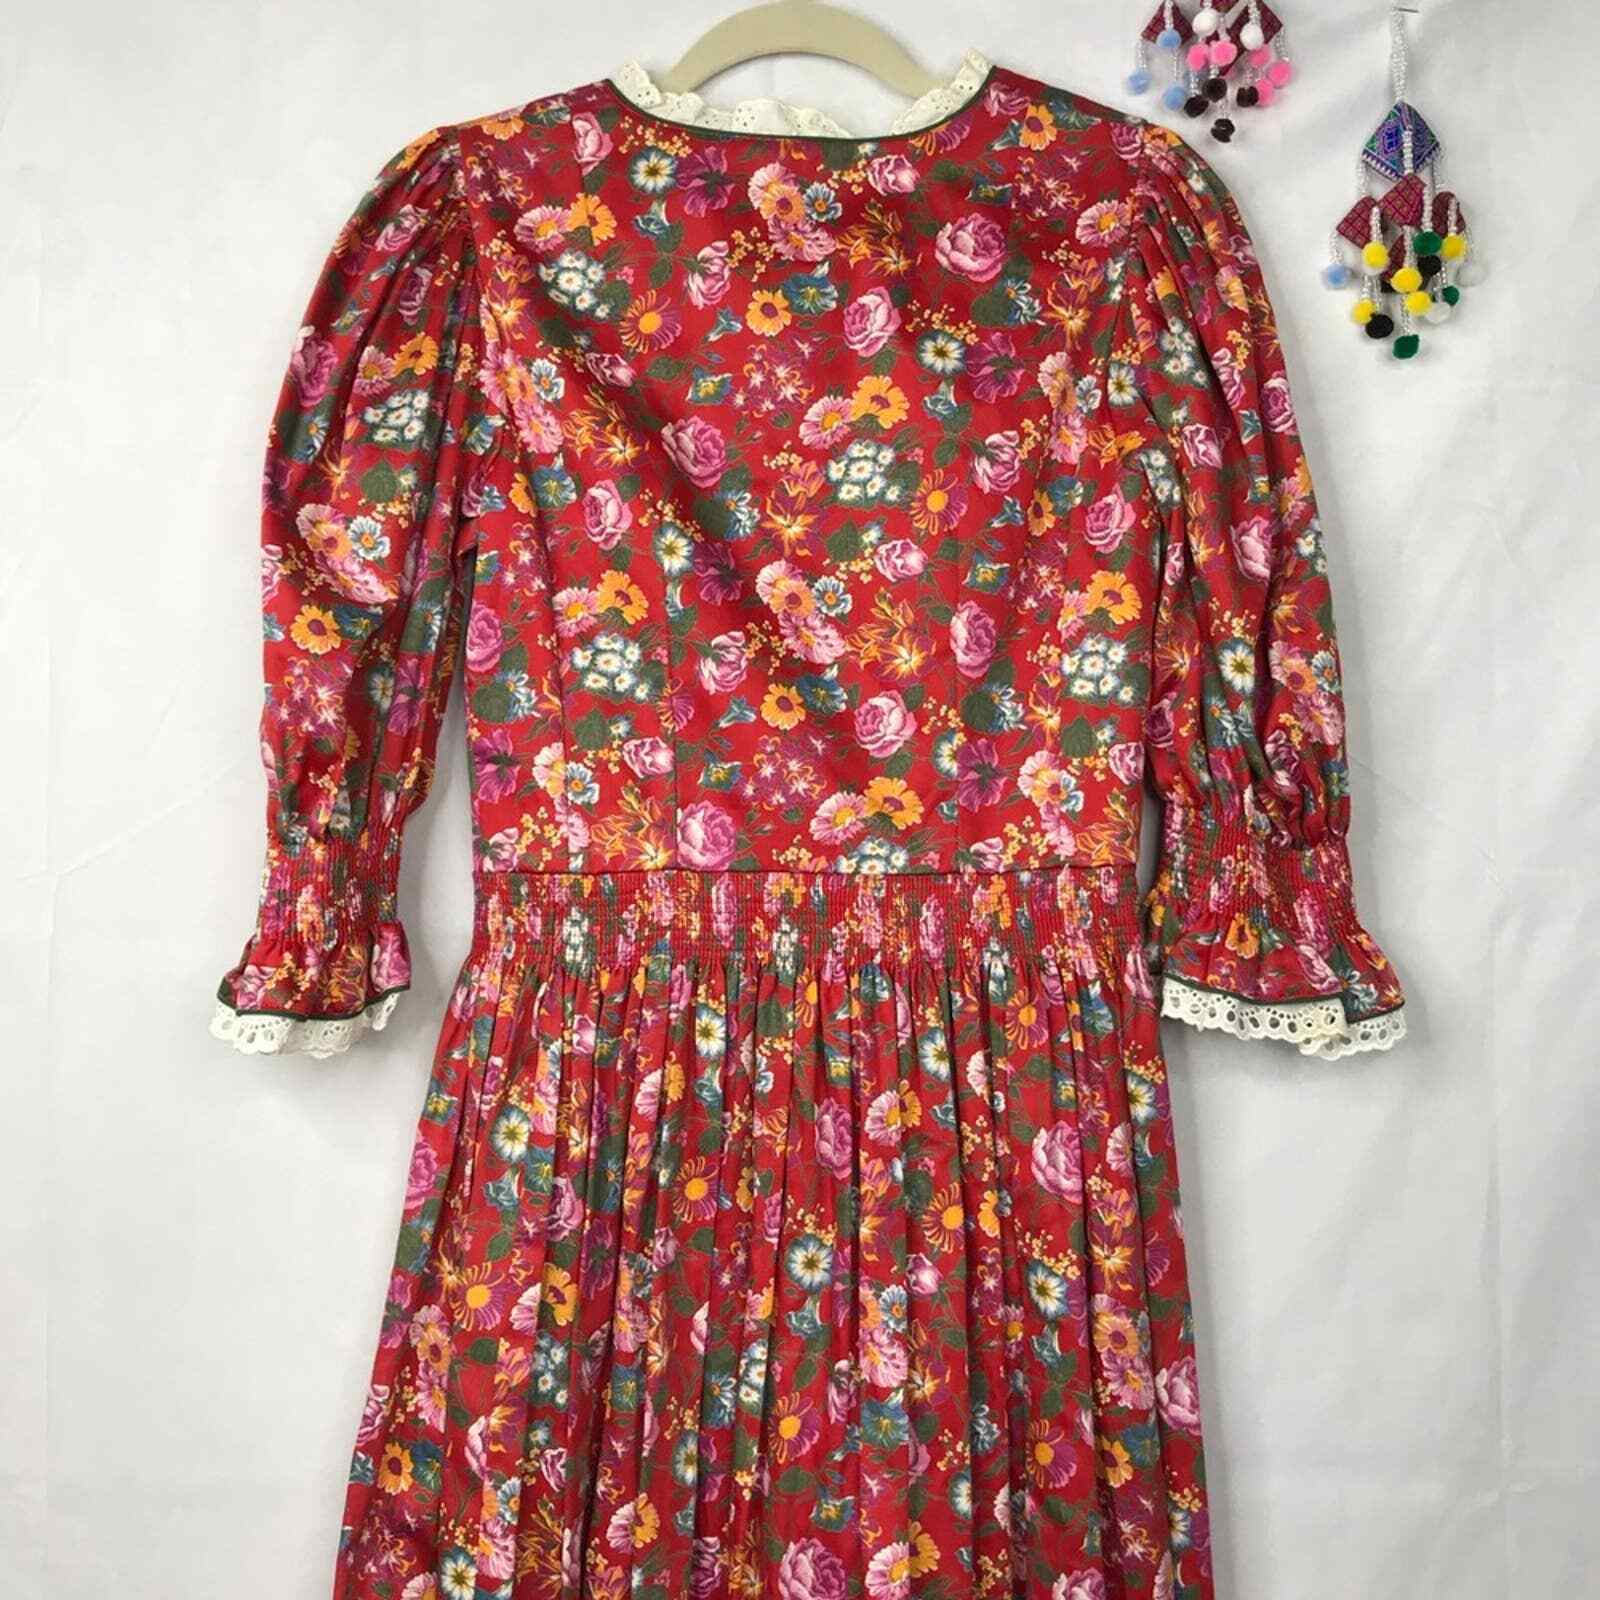 60s Style cottagecore floral prairie pleated dress - image 8